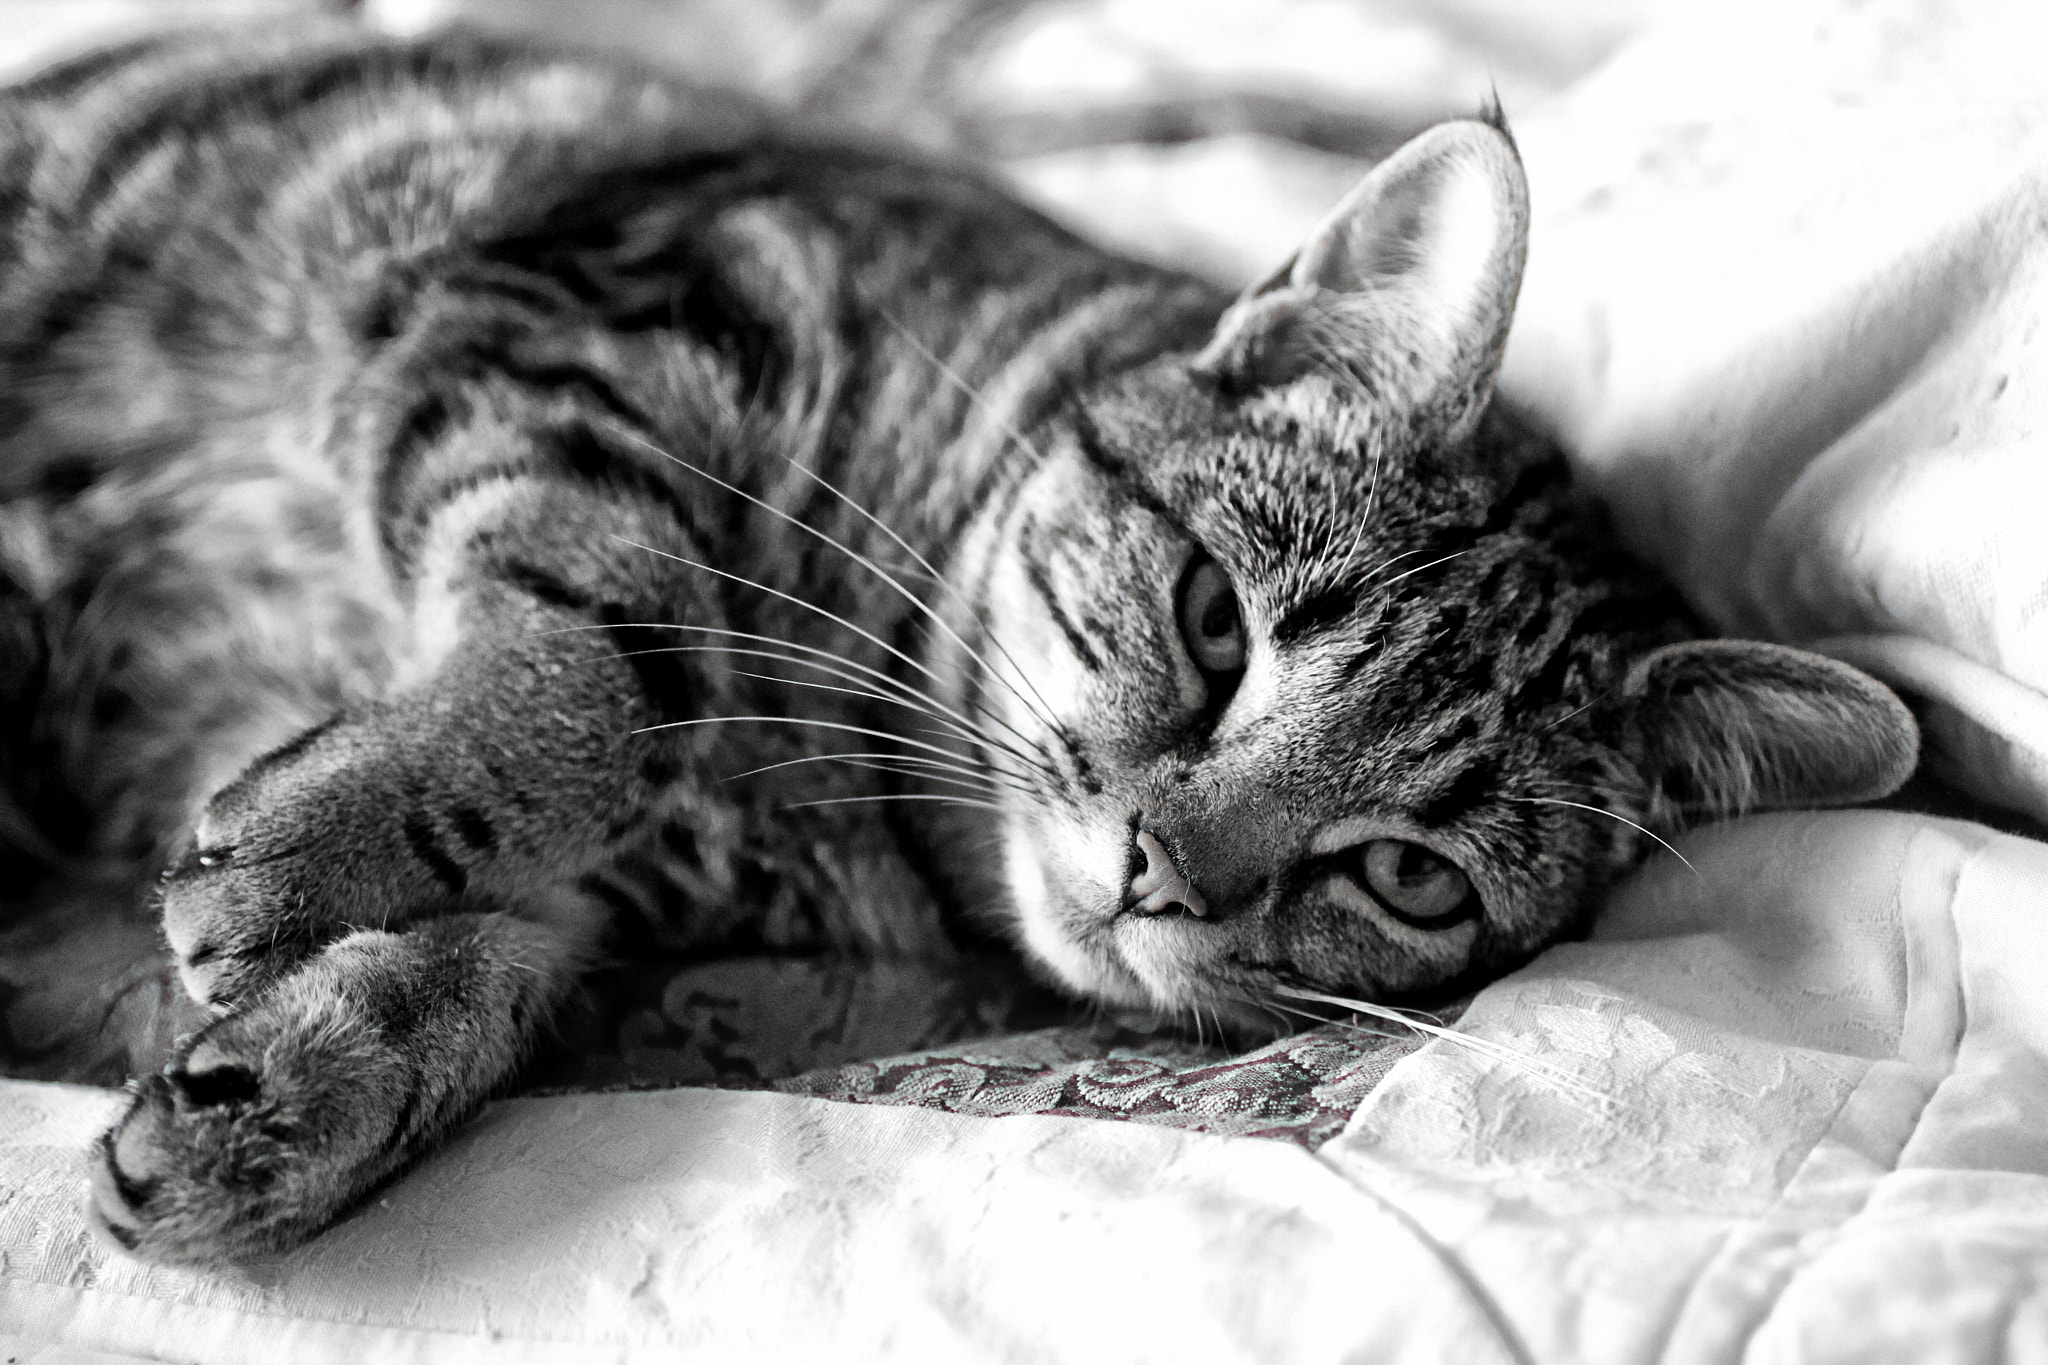 Photograph Sleepy by Anne Costello on 500px